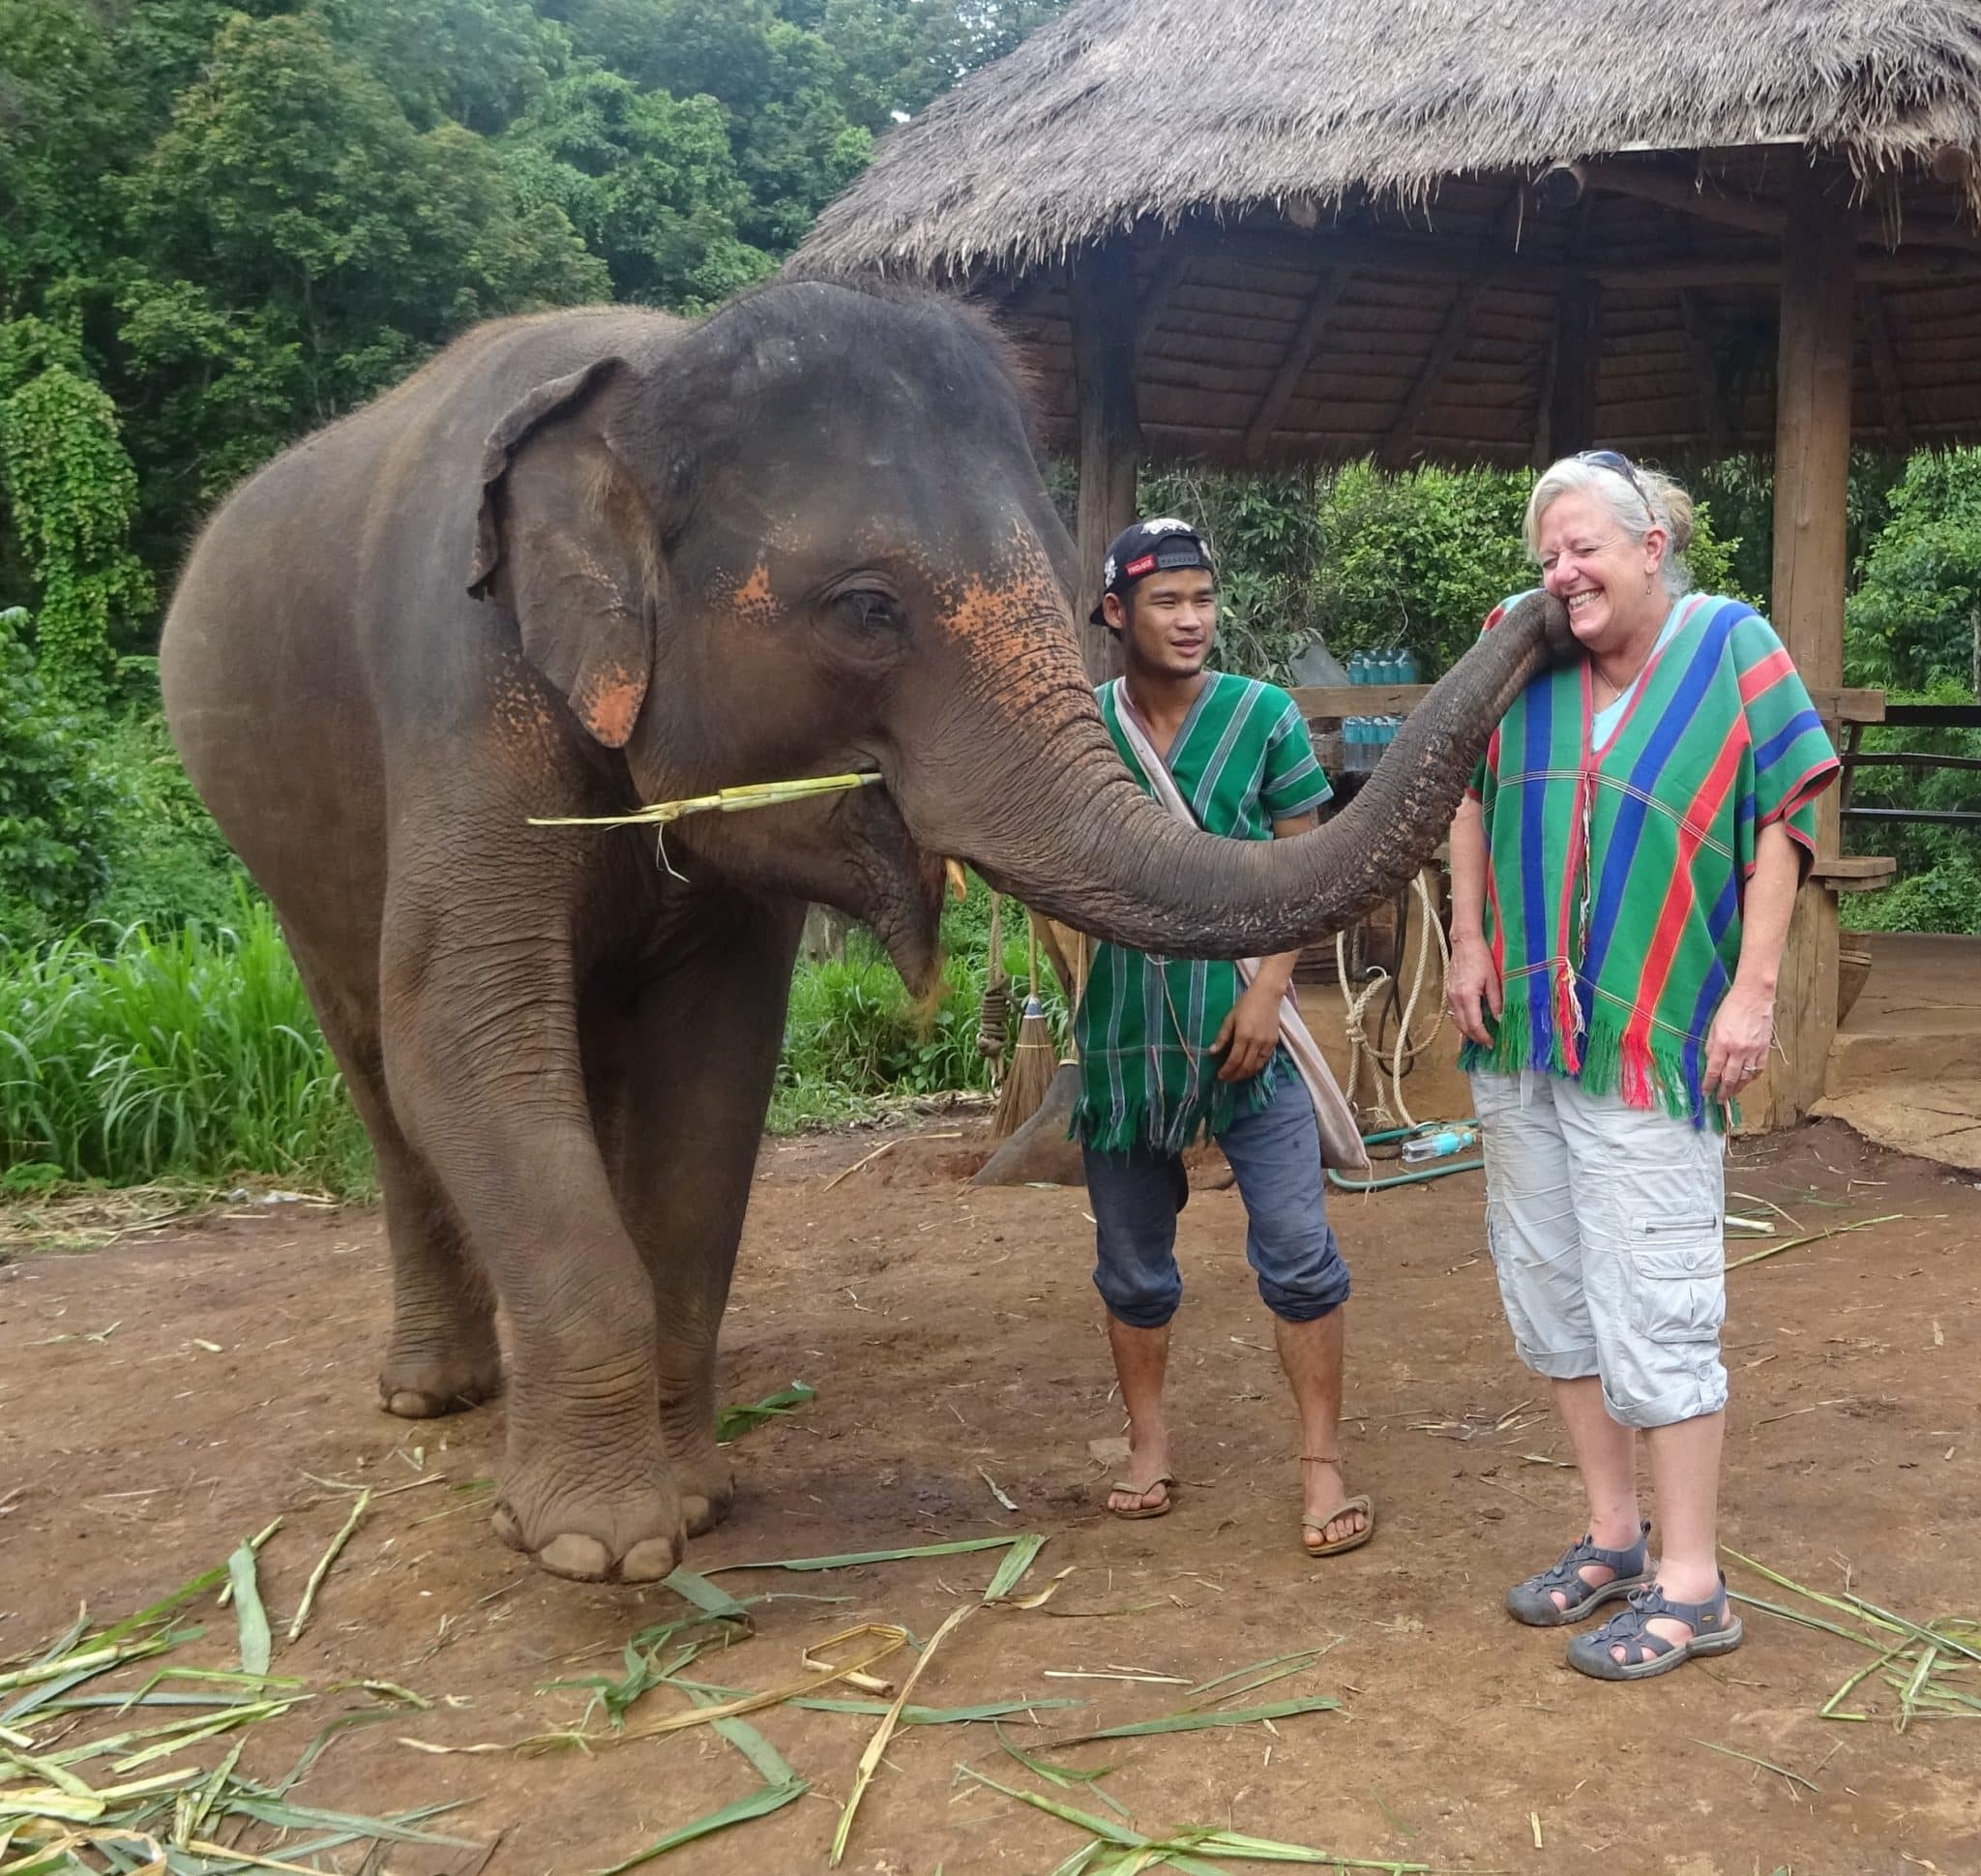 Thailand-elephant-kiss-Melanie-CEO-Rare-Finds-Travel